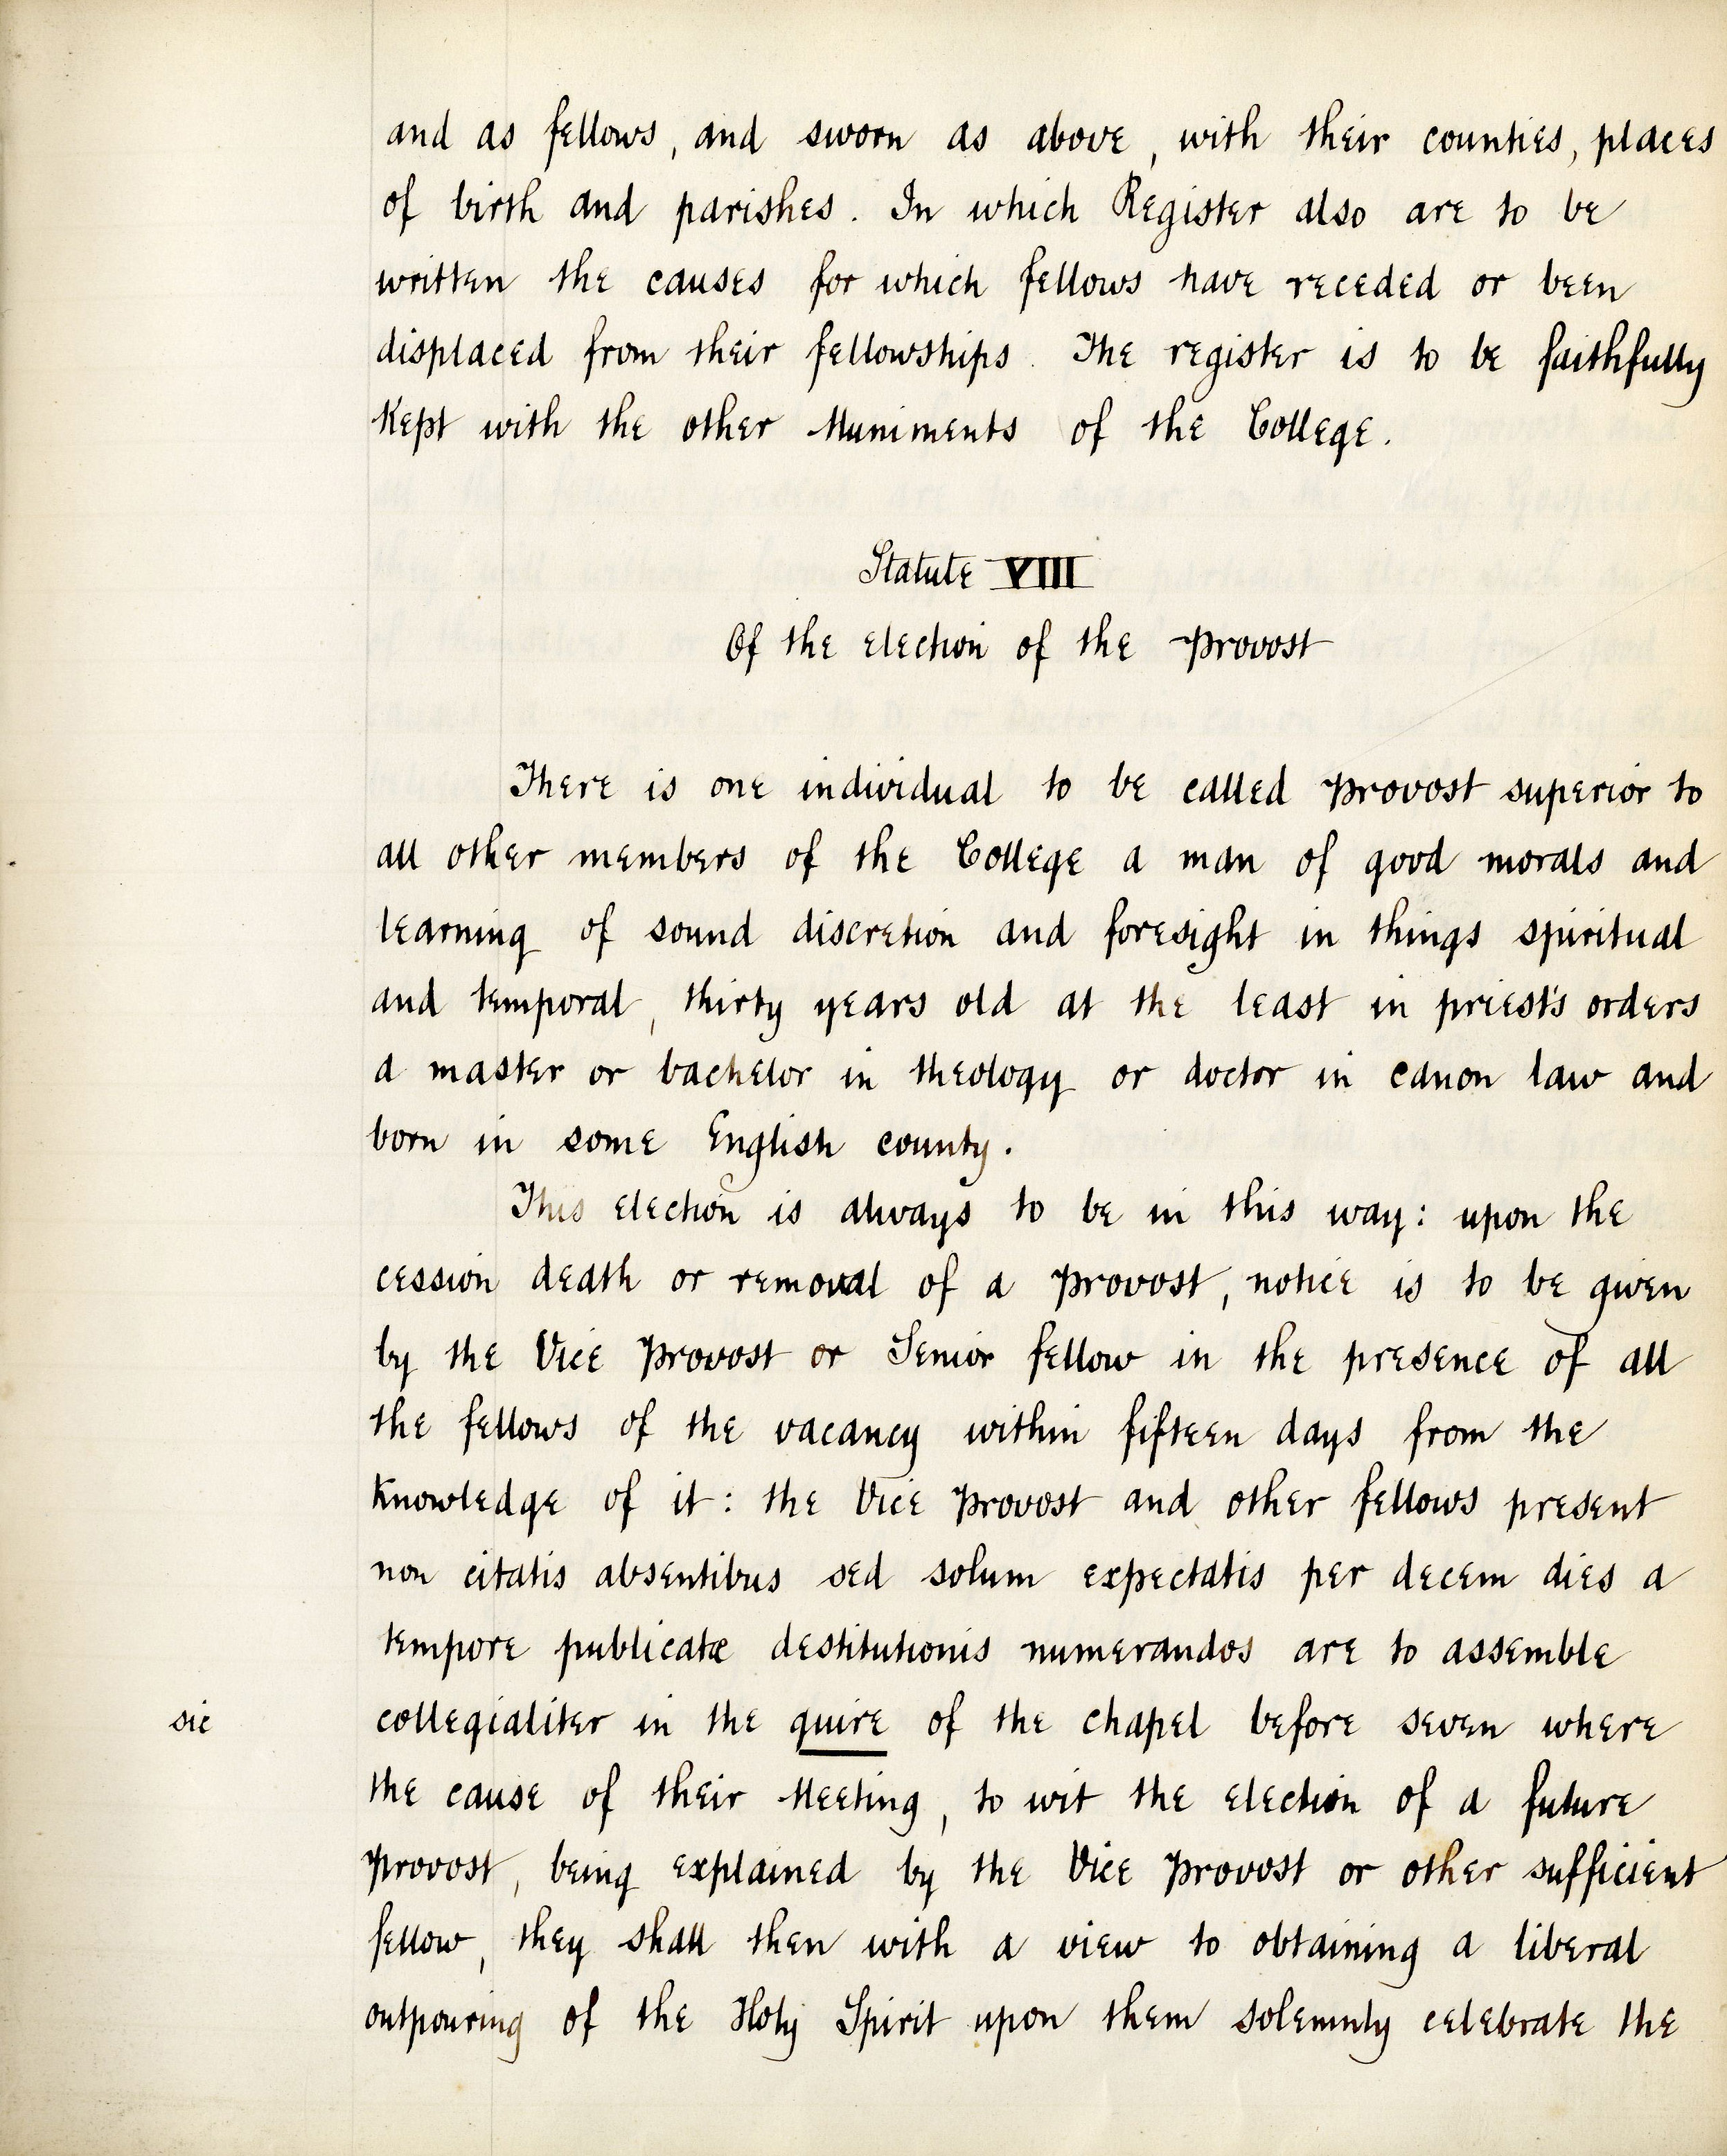 First page of Founder's Statute VIII . Translated by the Bursar T. Brocklebank (KCS/69)